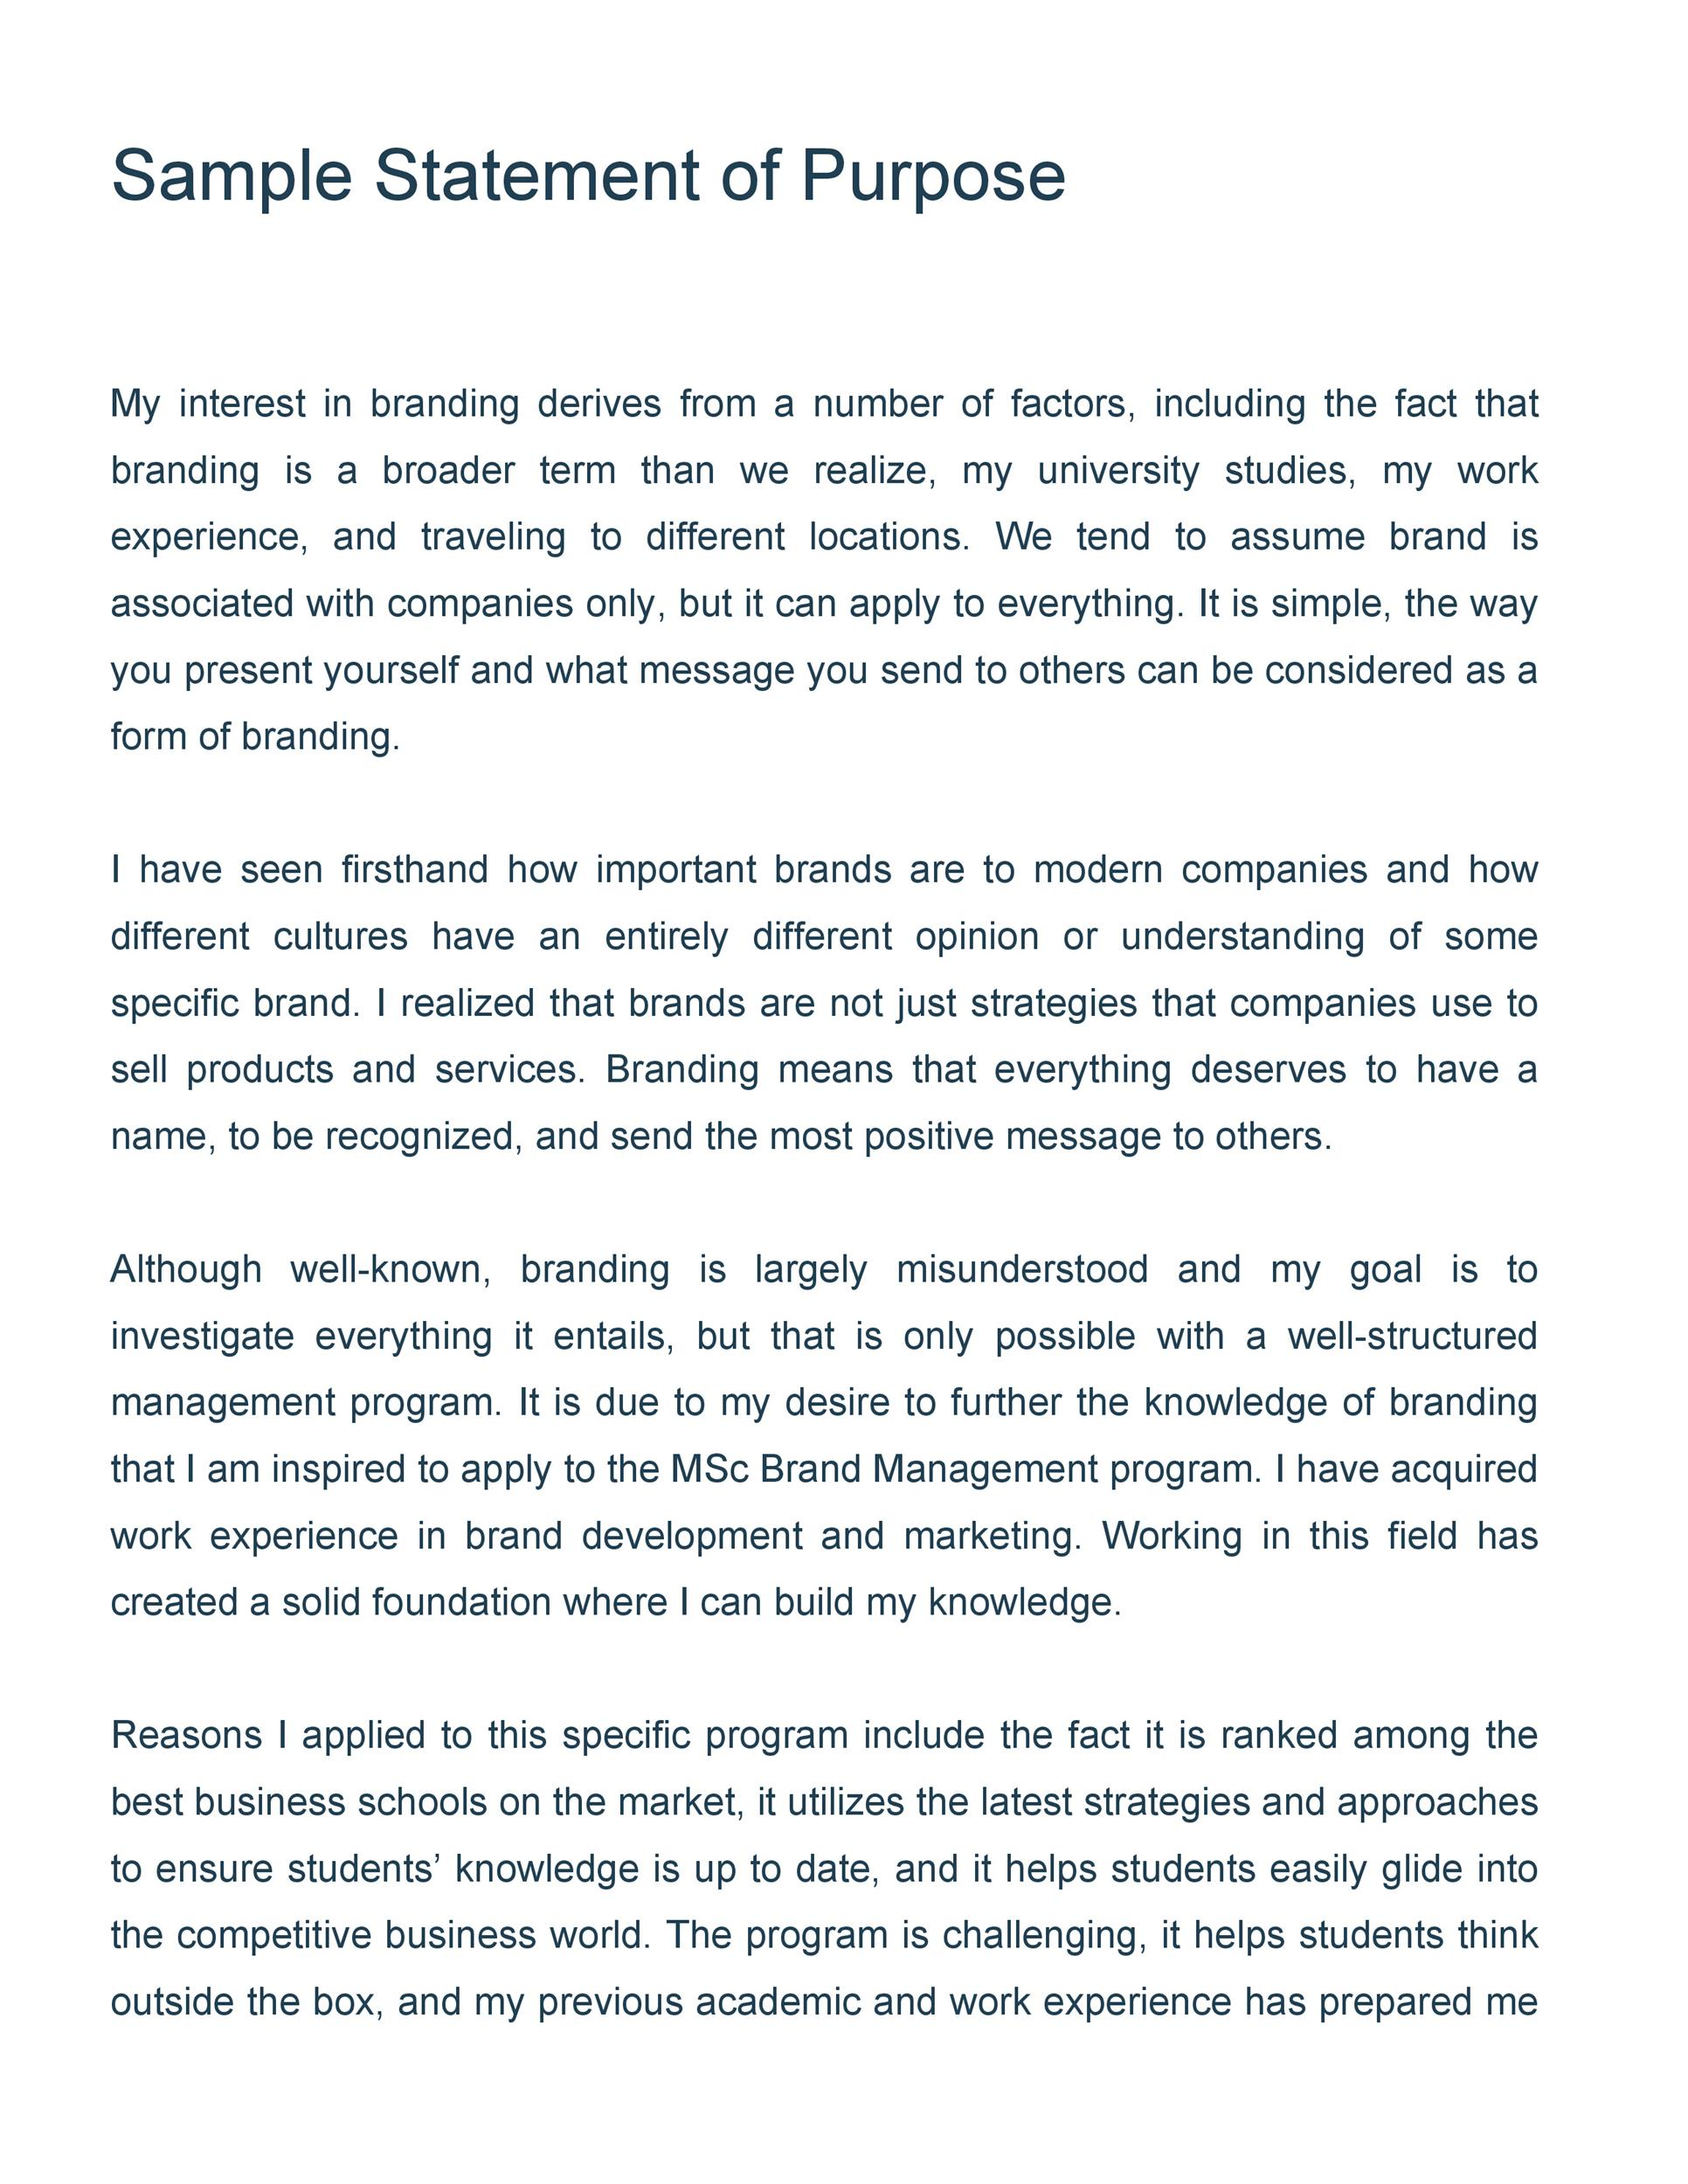 Personal statement essay for international student